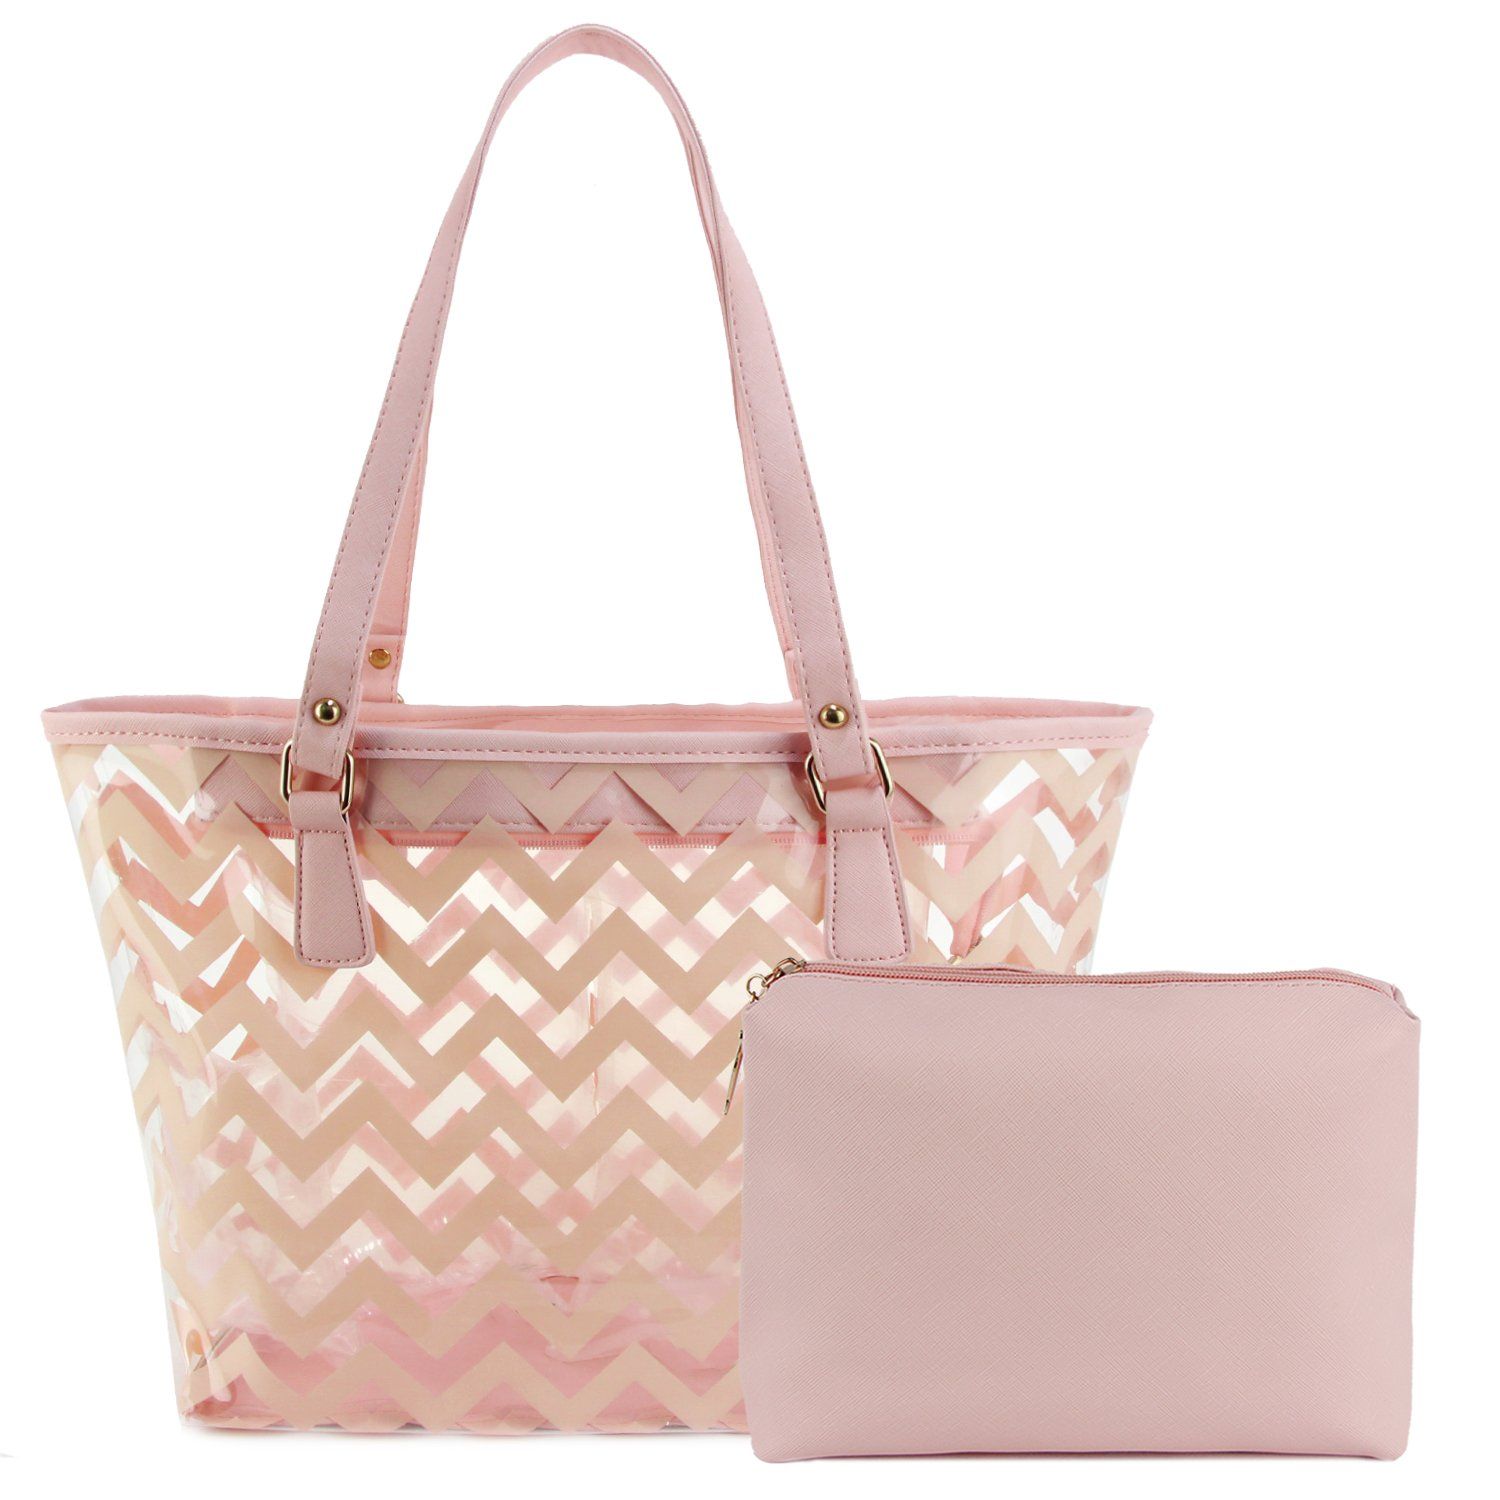 Clear Tote Bags with Full Chevron Prints PVC Shoulder Handbag with Interior Pocket (Pink)